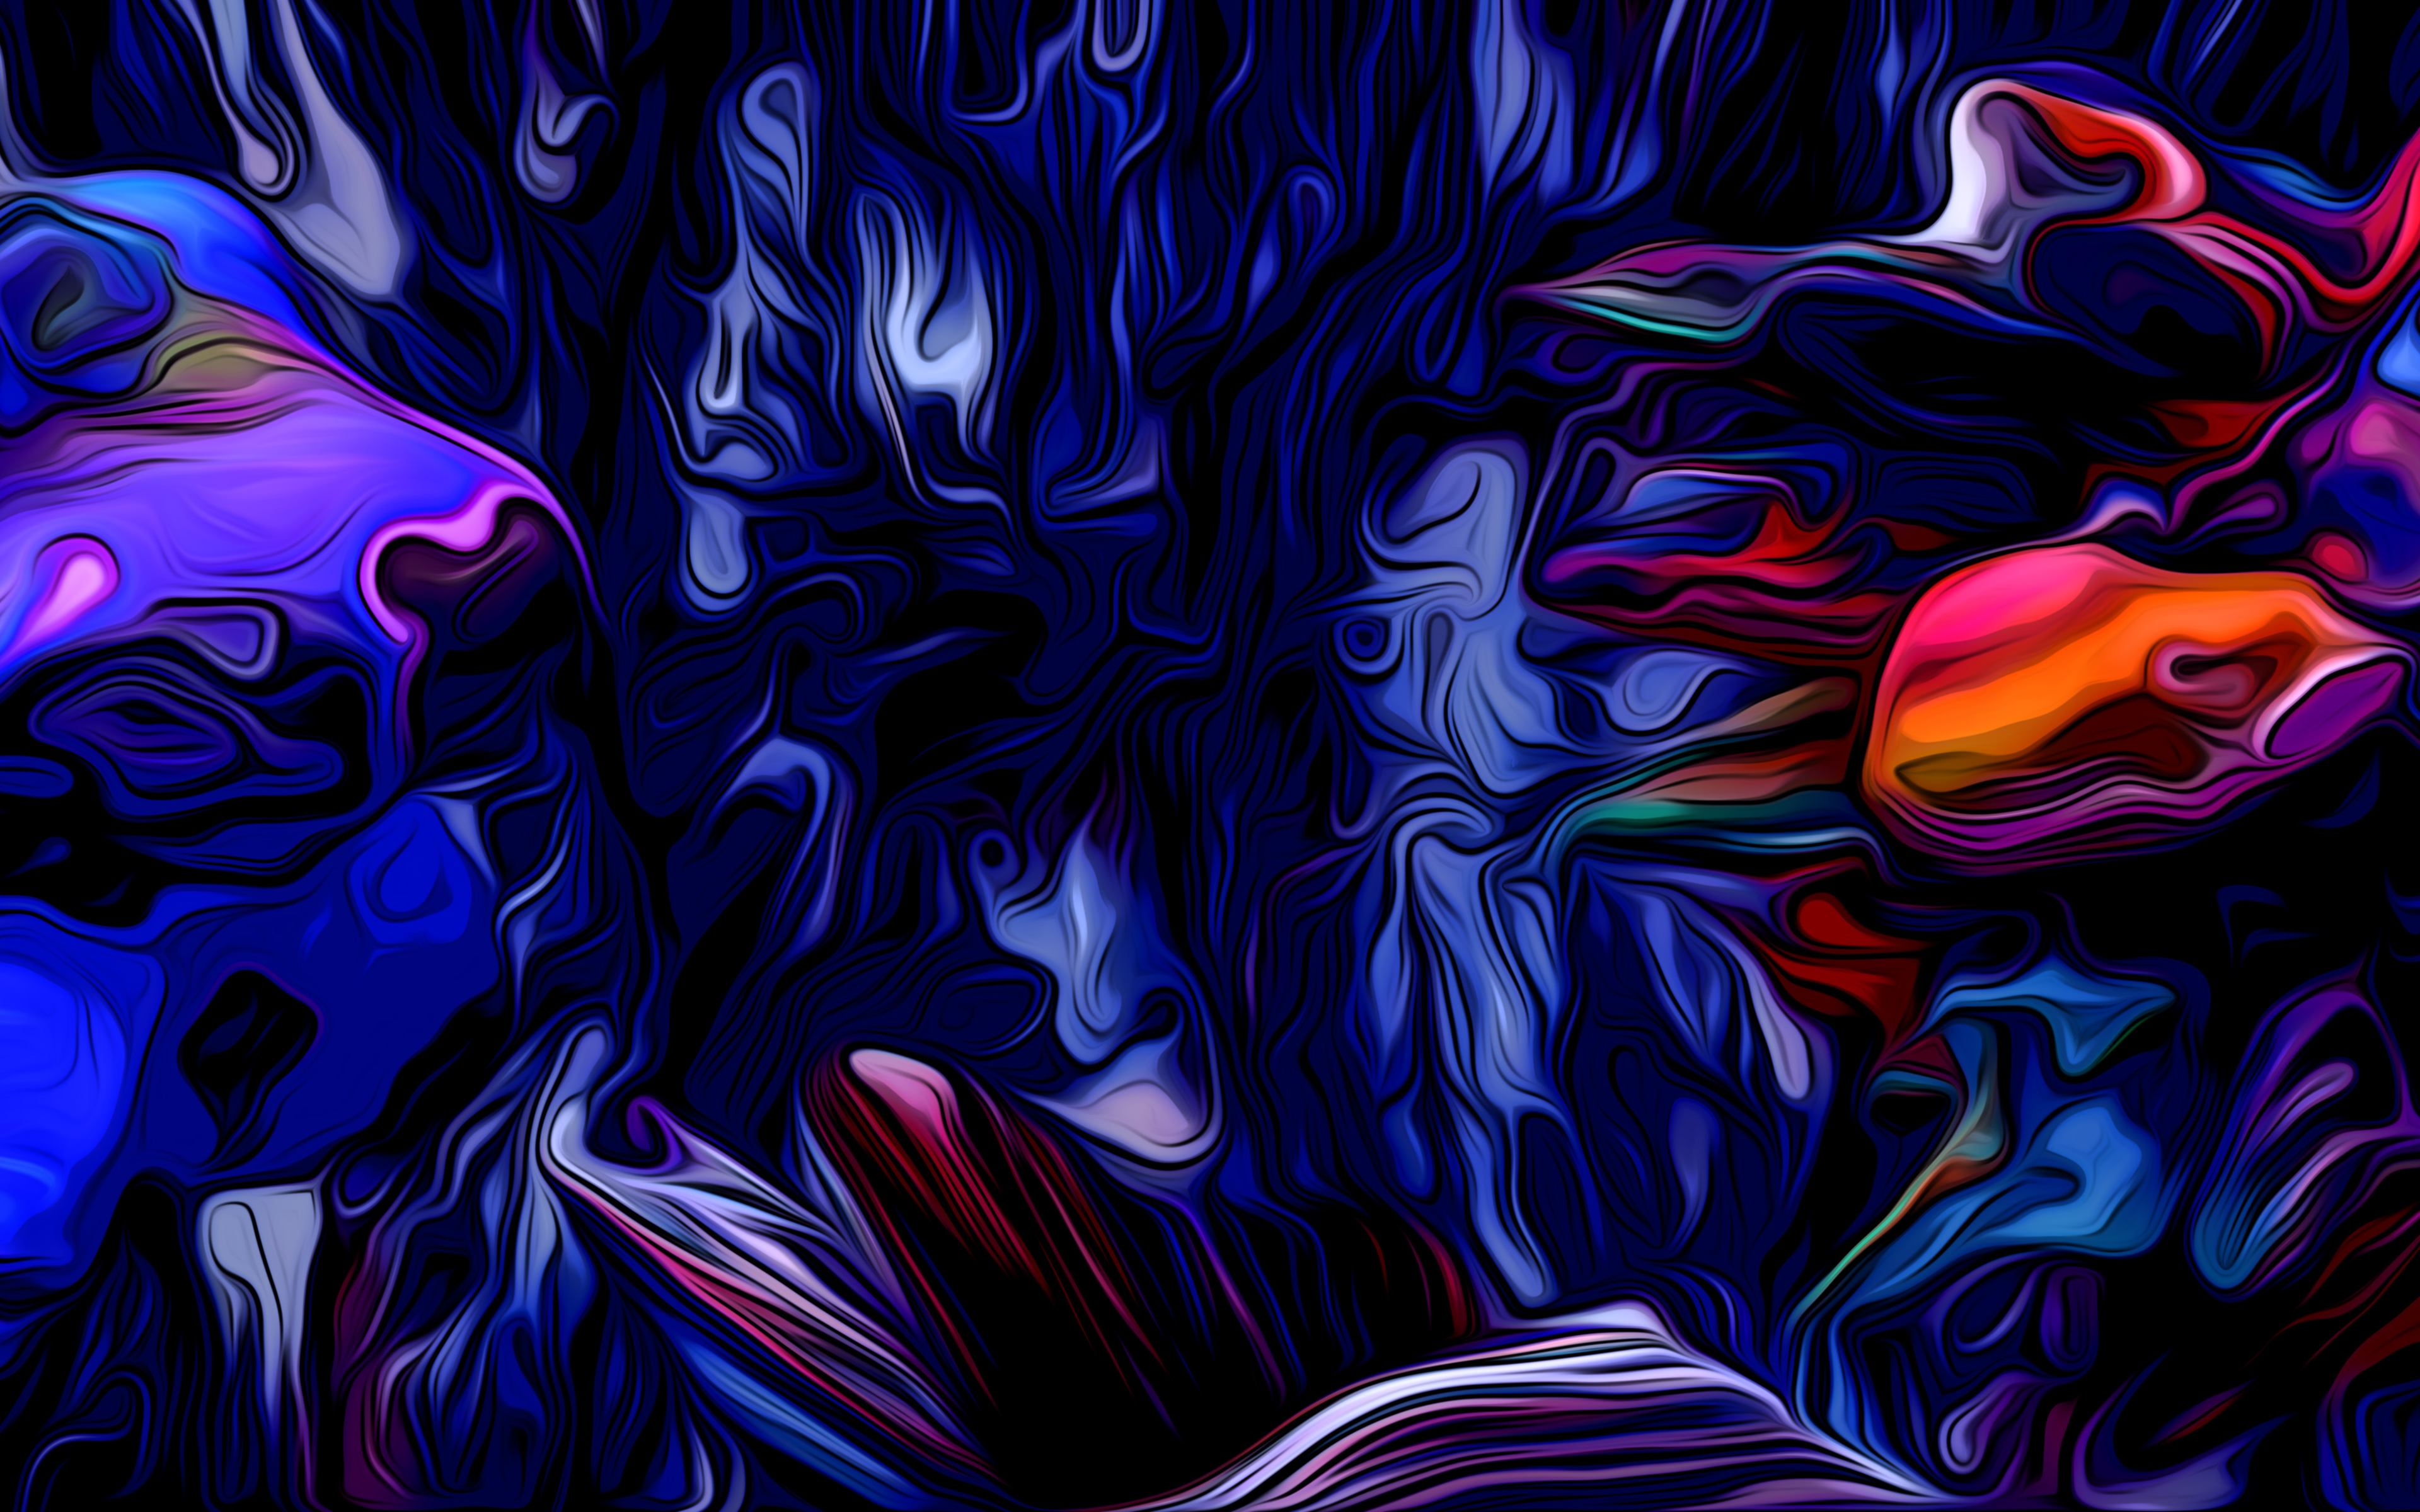 Abstract Wallpapers Full Hd 4k - 3840x2400 - Download HD ...